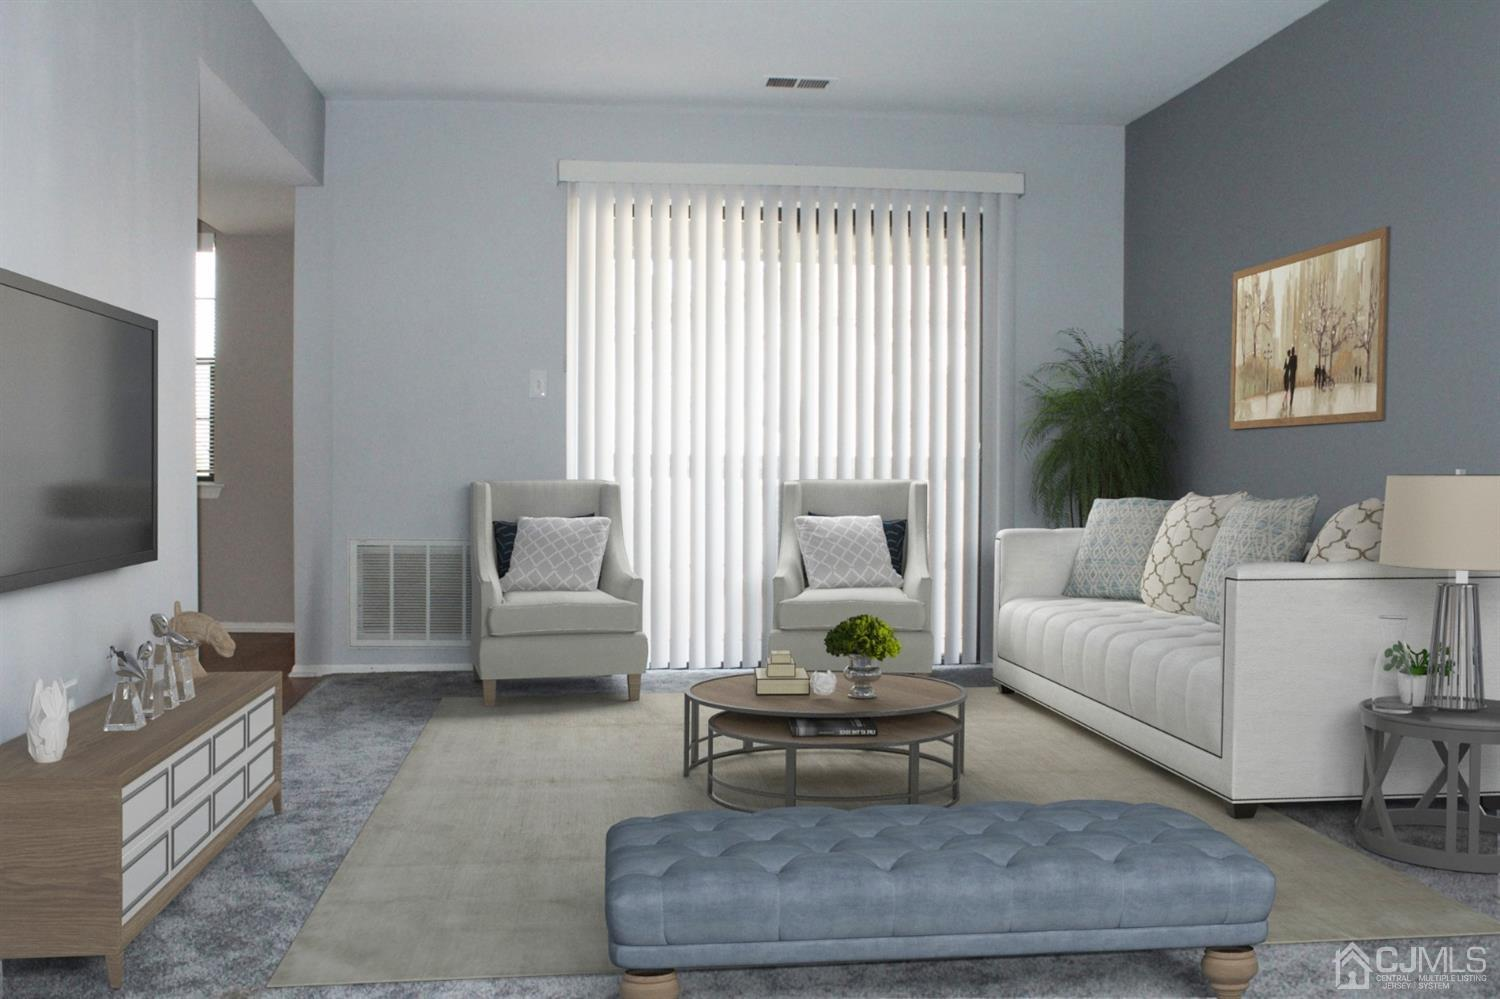 VIRTUAL STAGING OF LIVING ROOM WITH FURNITURE